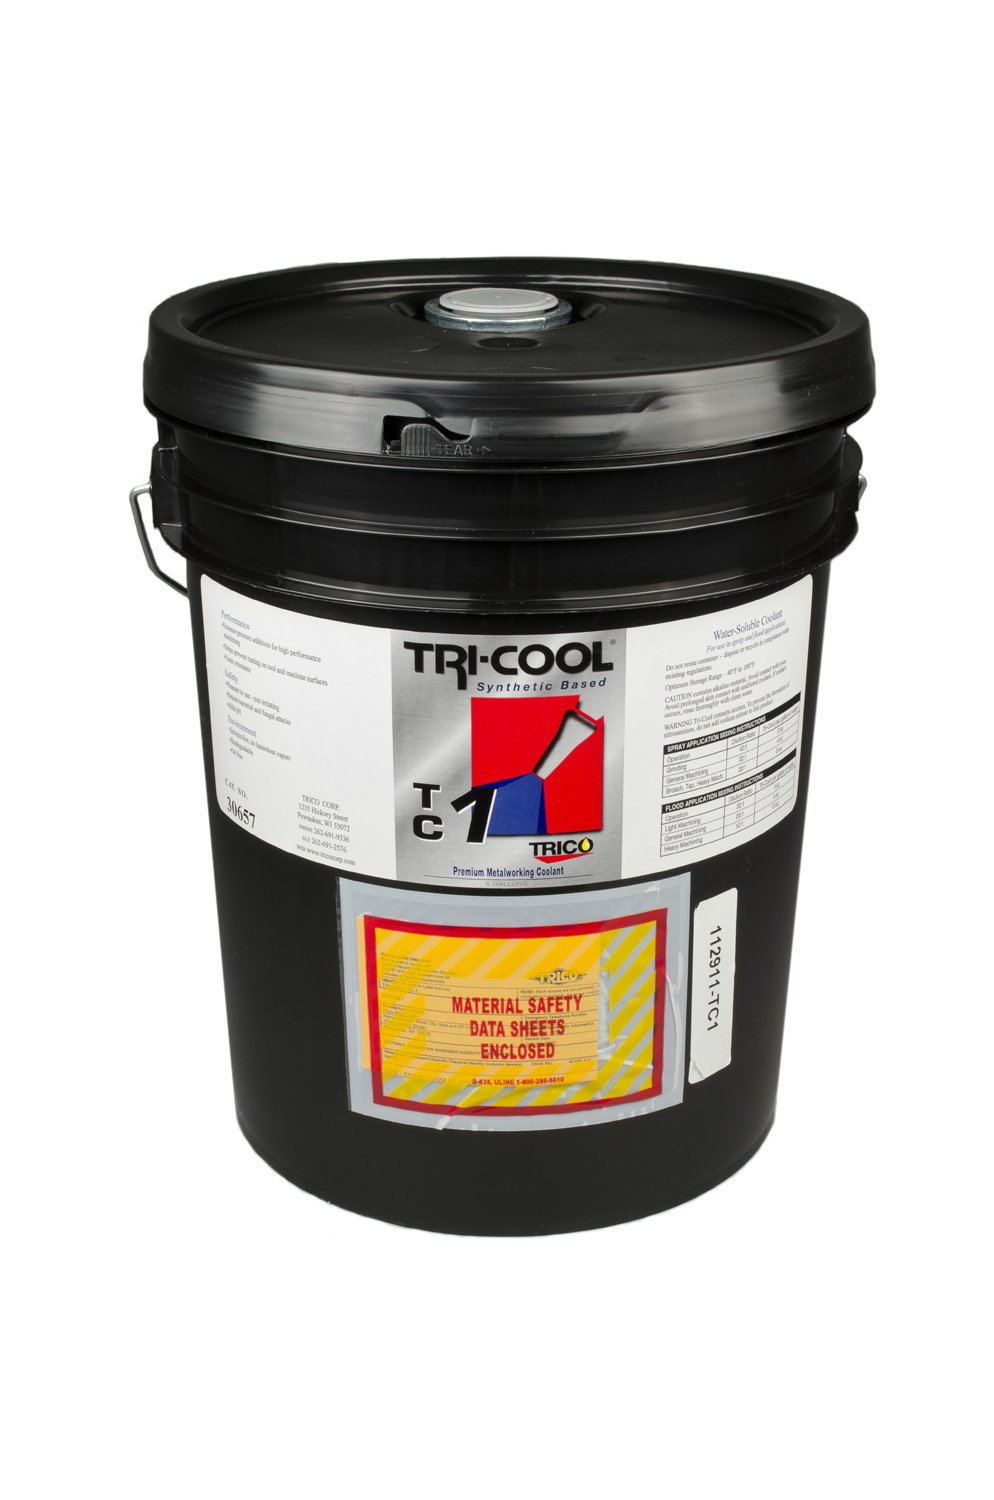 Trico TC-1 Premium Synthetic Water-Soluble Coolant, 5 Gallon Pail by Trico